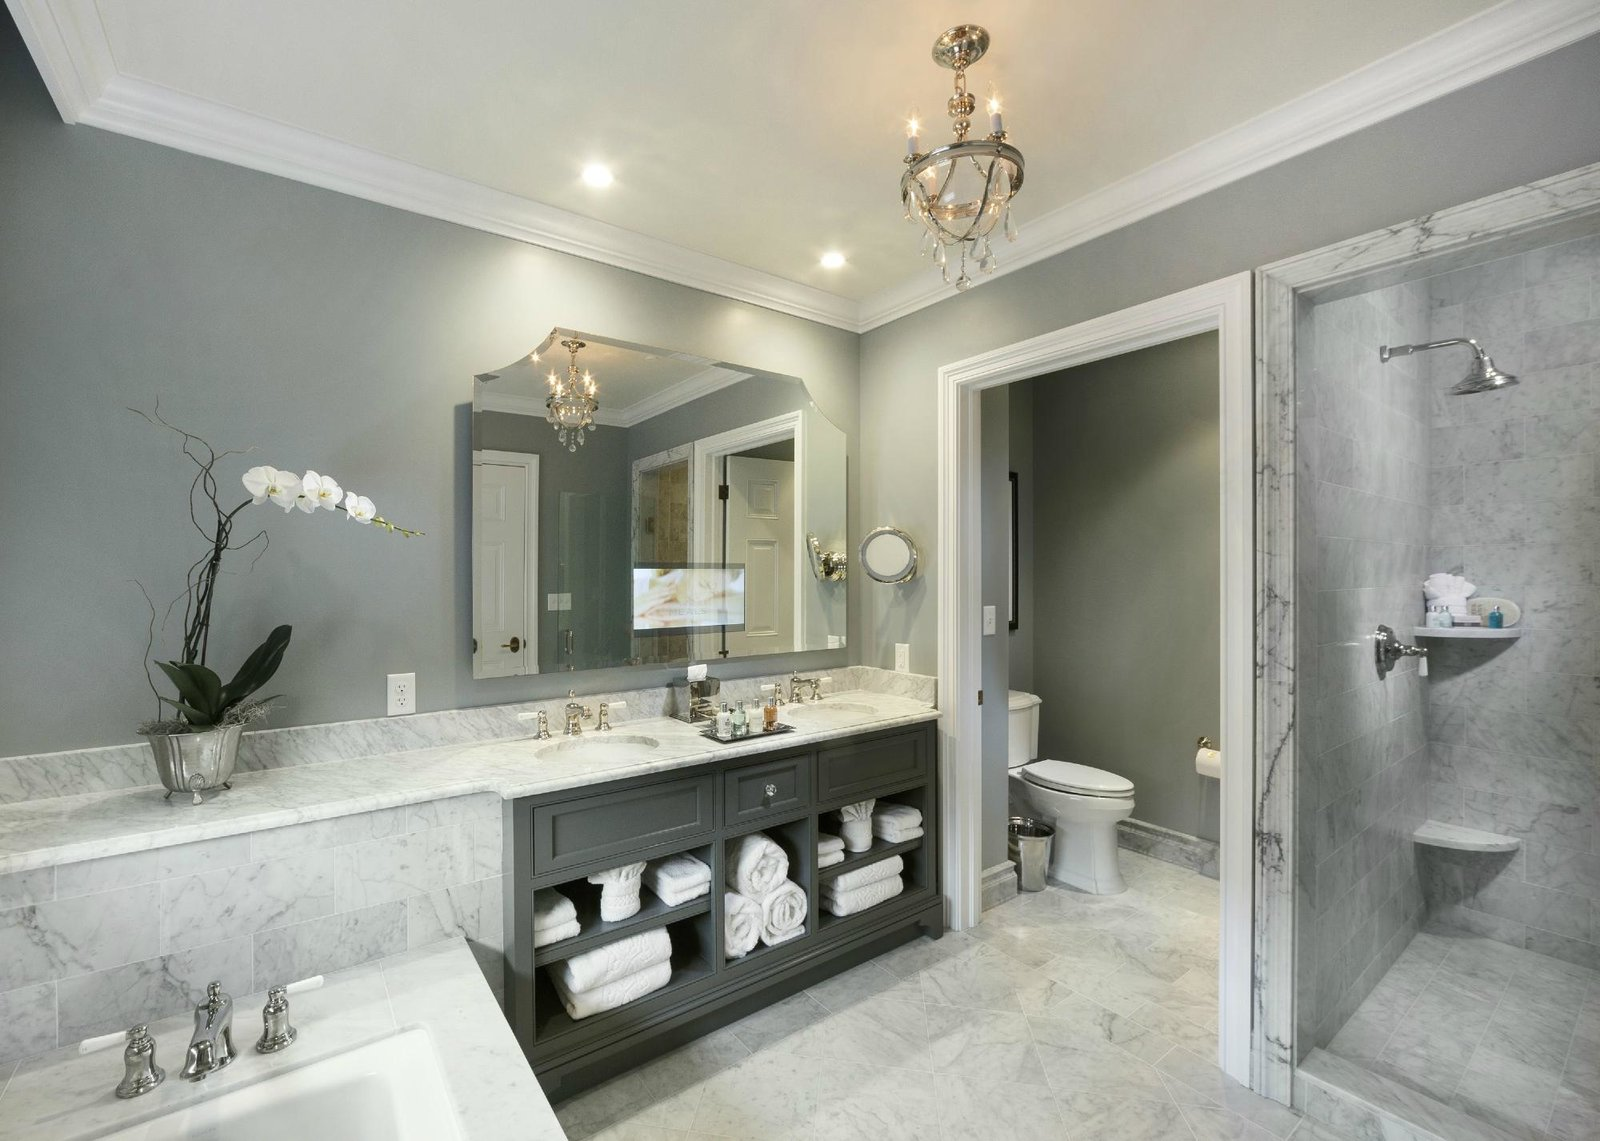 Bath Room, Marble Counter, Two Piece Toilet, Undermount Tub, Pendant Lighting, Undermount Sink, Marble Floor, Corner Shower, and Recessed Lighting  Jefferson Hotel